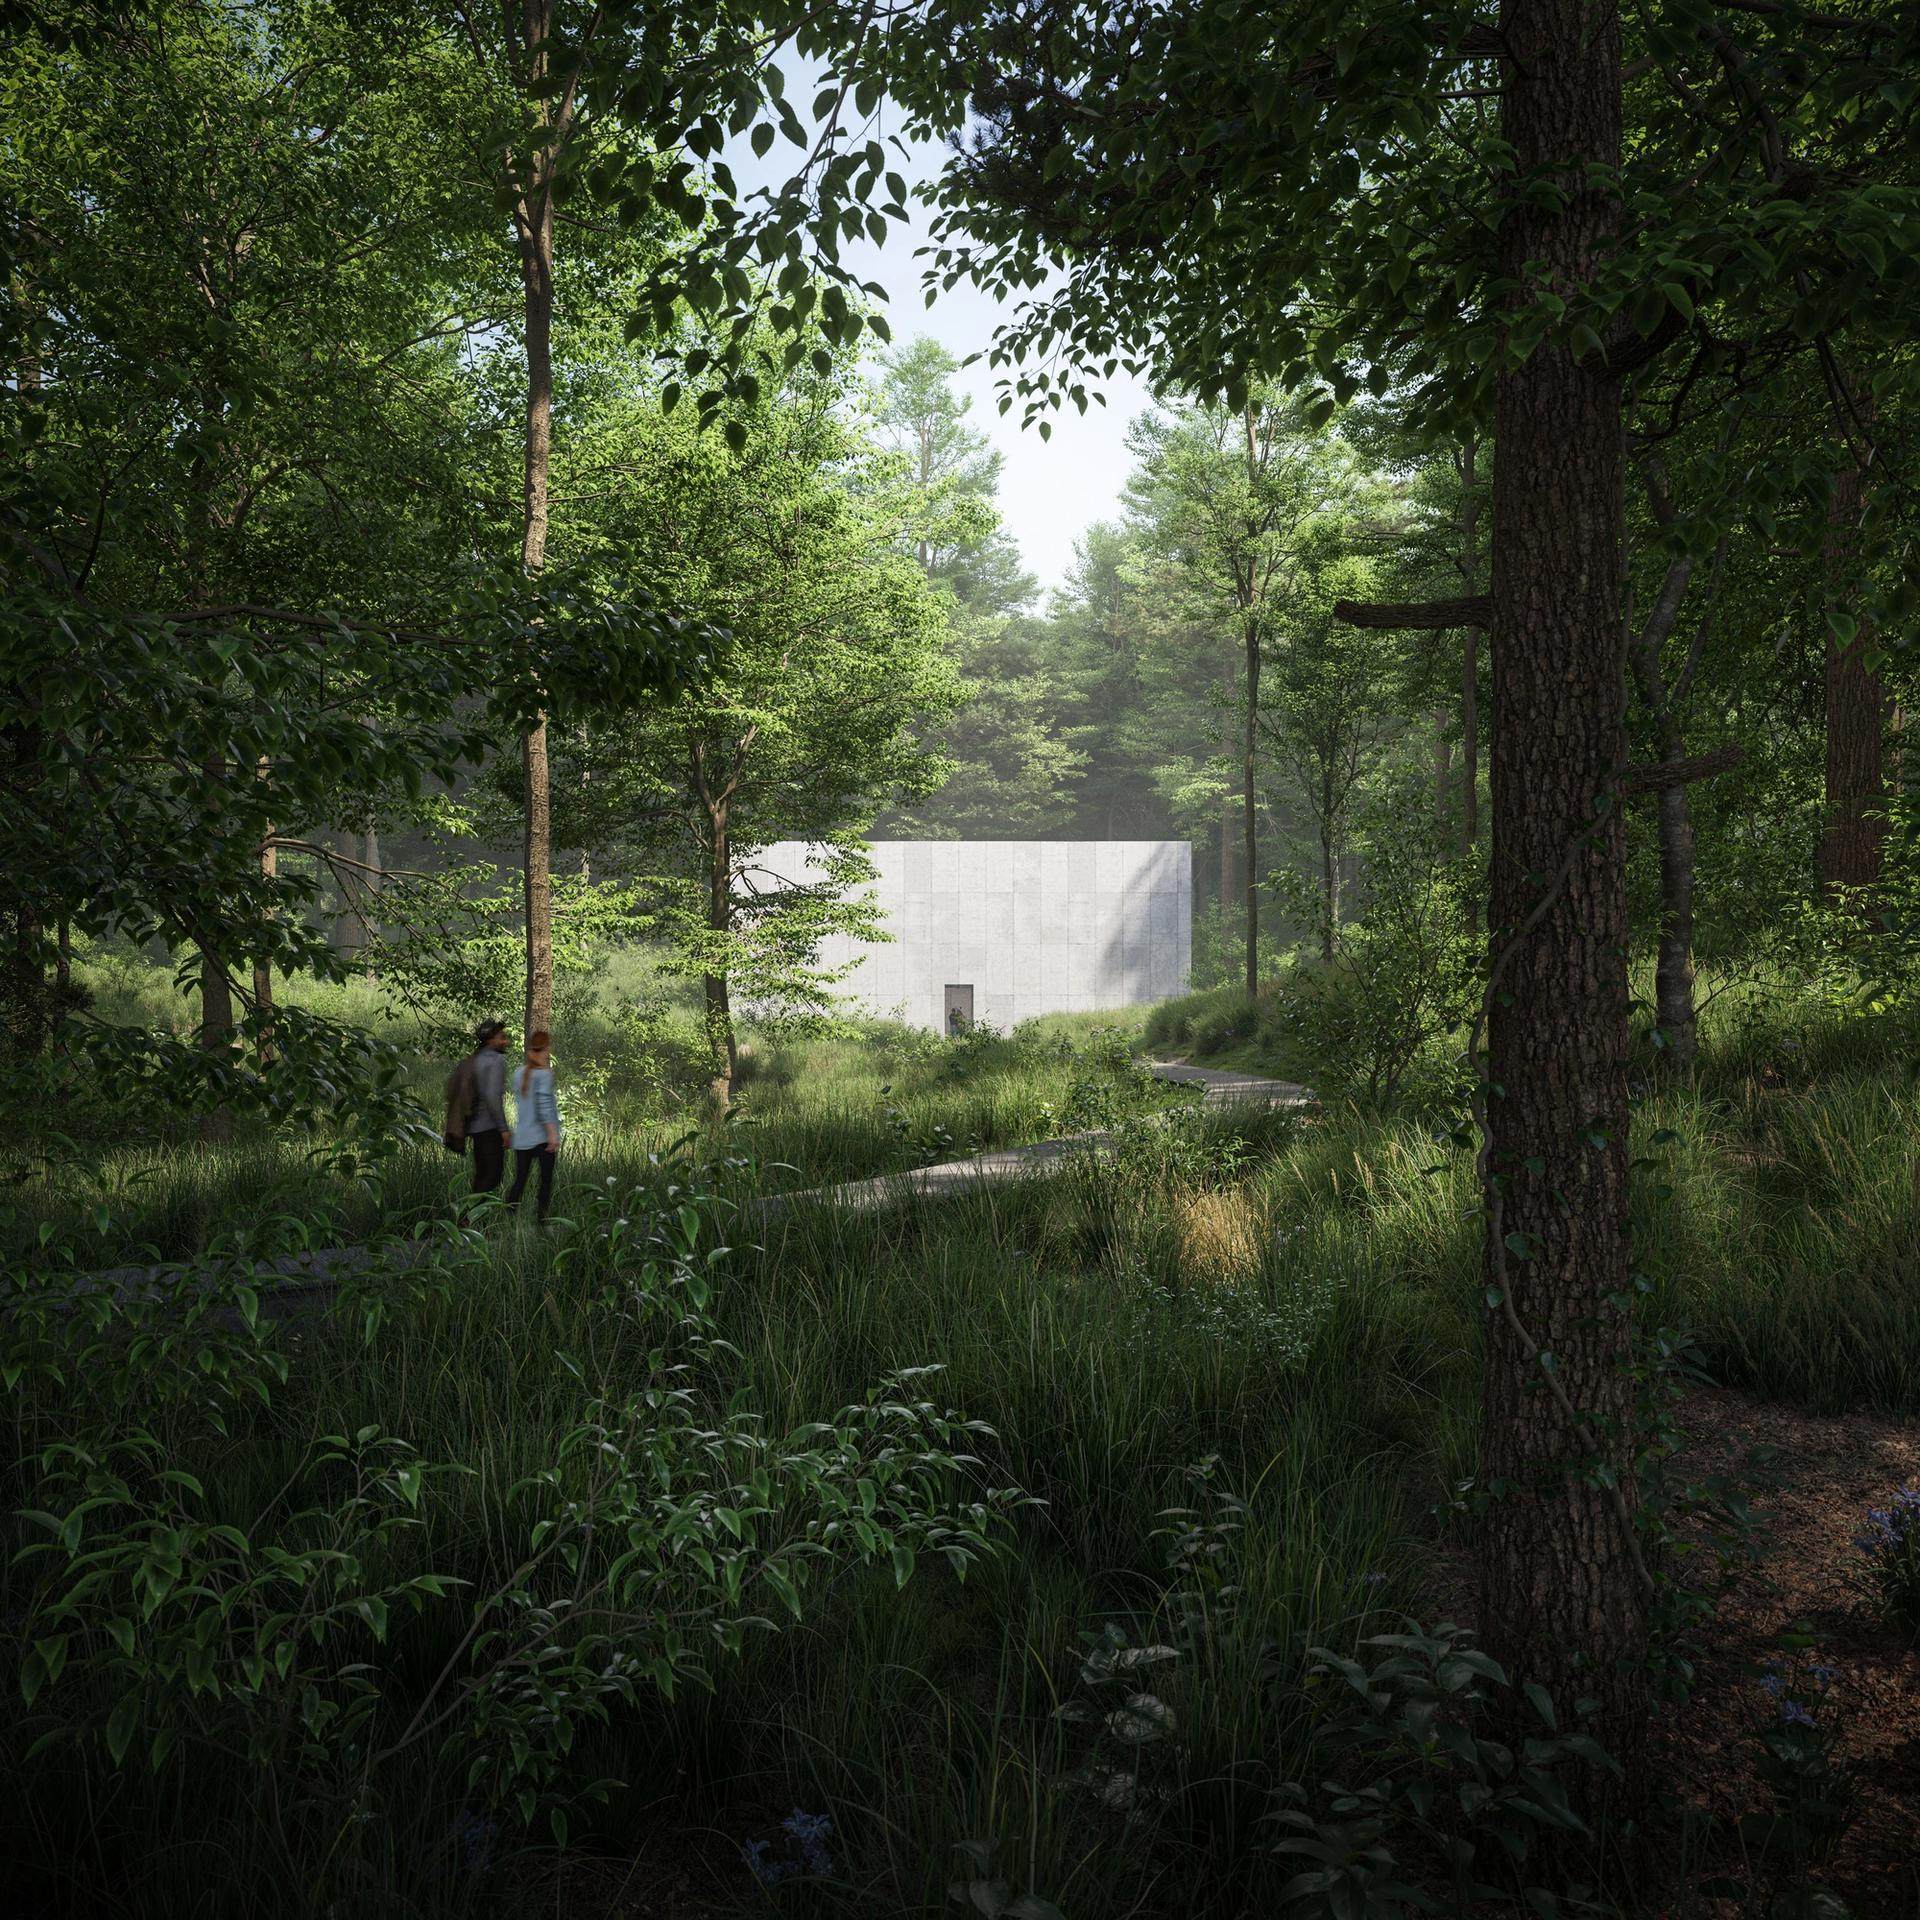 A rendering of the forest approach to the new building at Glenstone Museum Image: The Boundary. Courtesy of Glenstone Museum